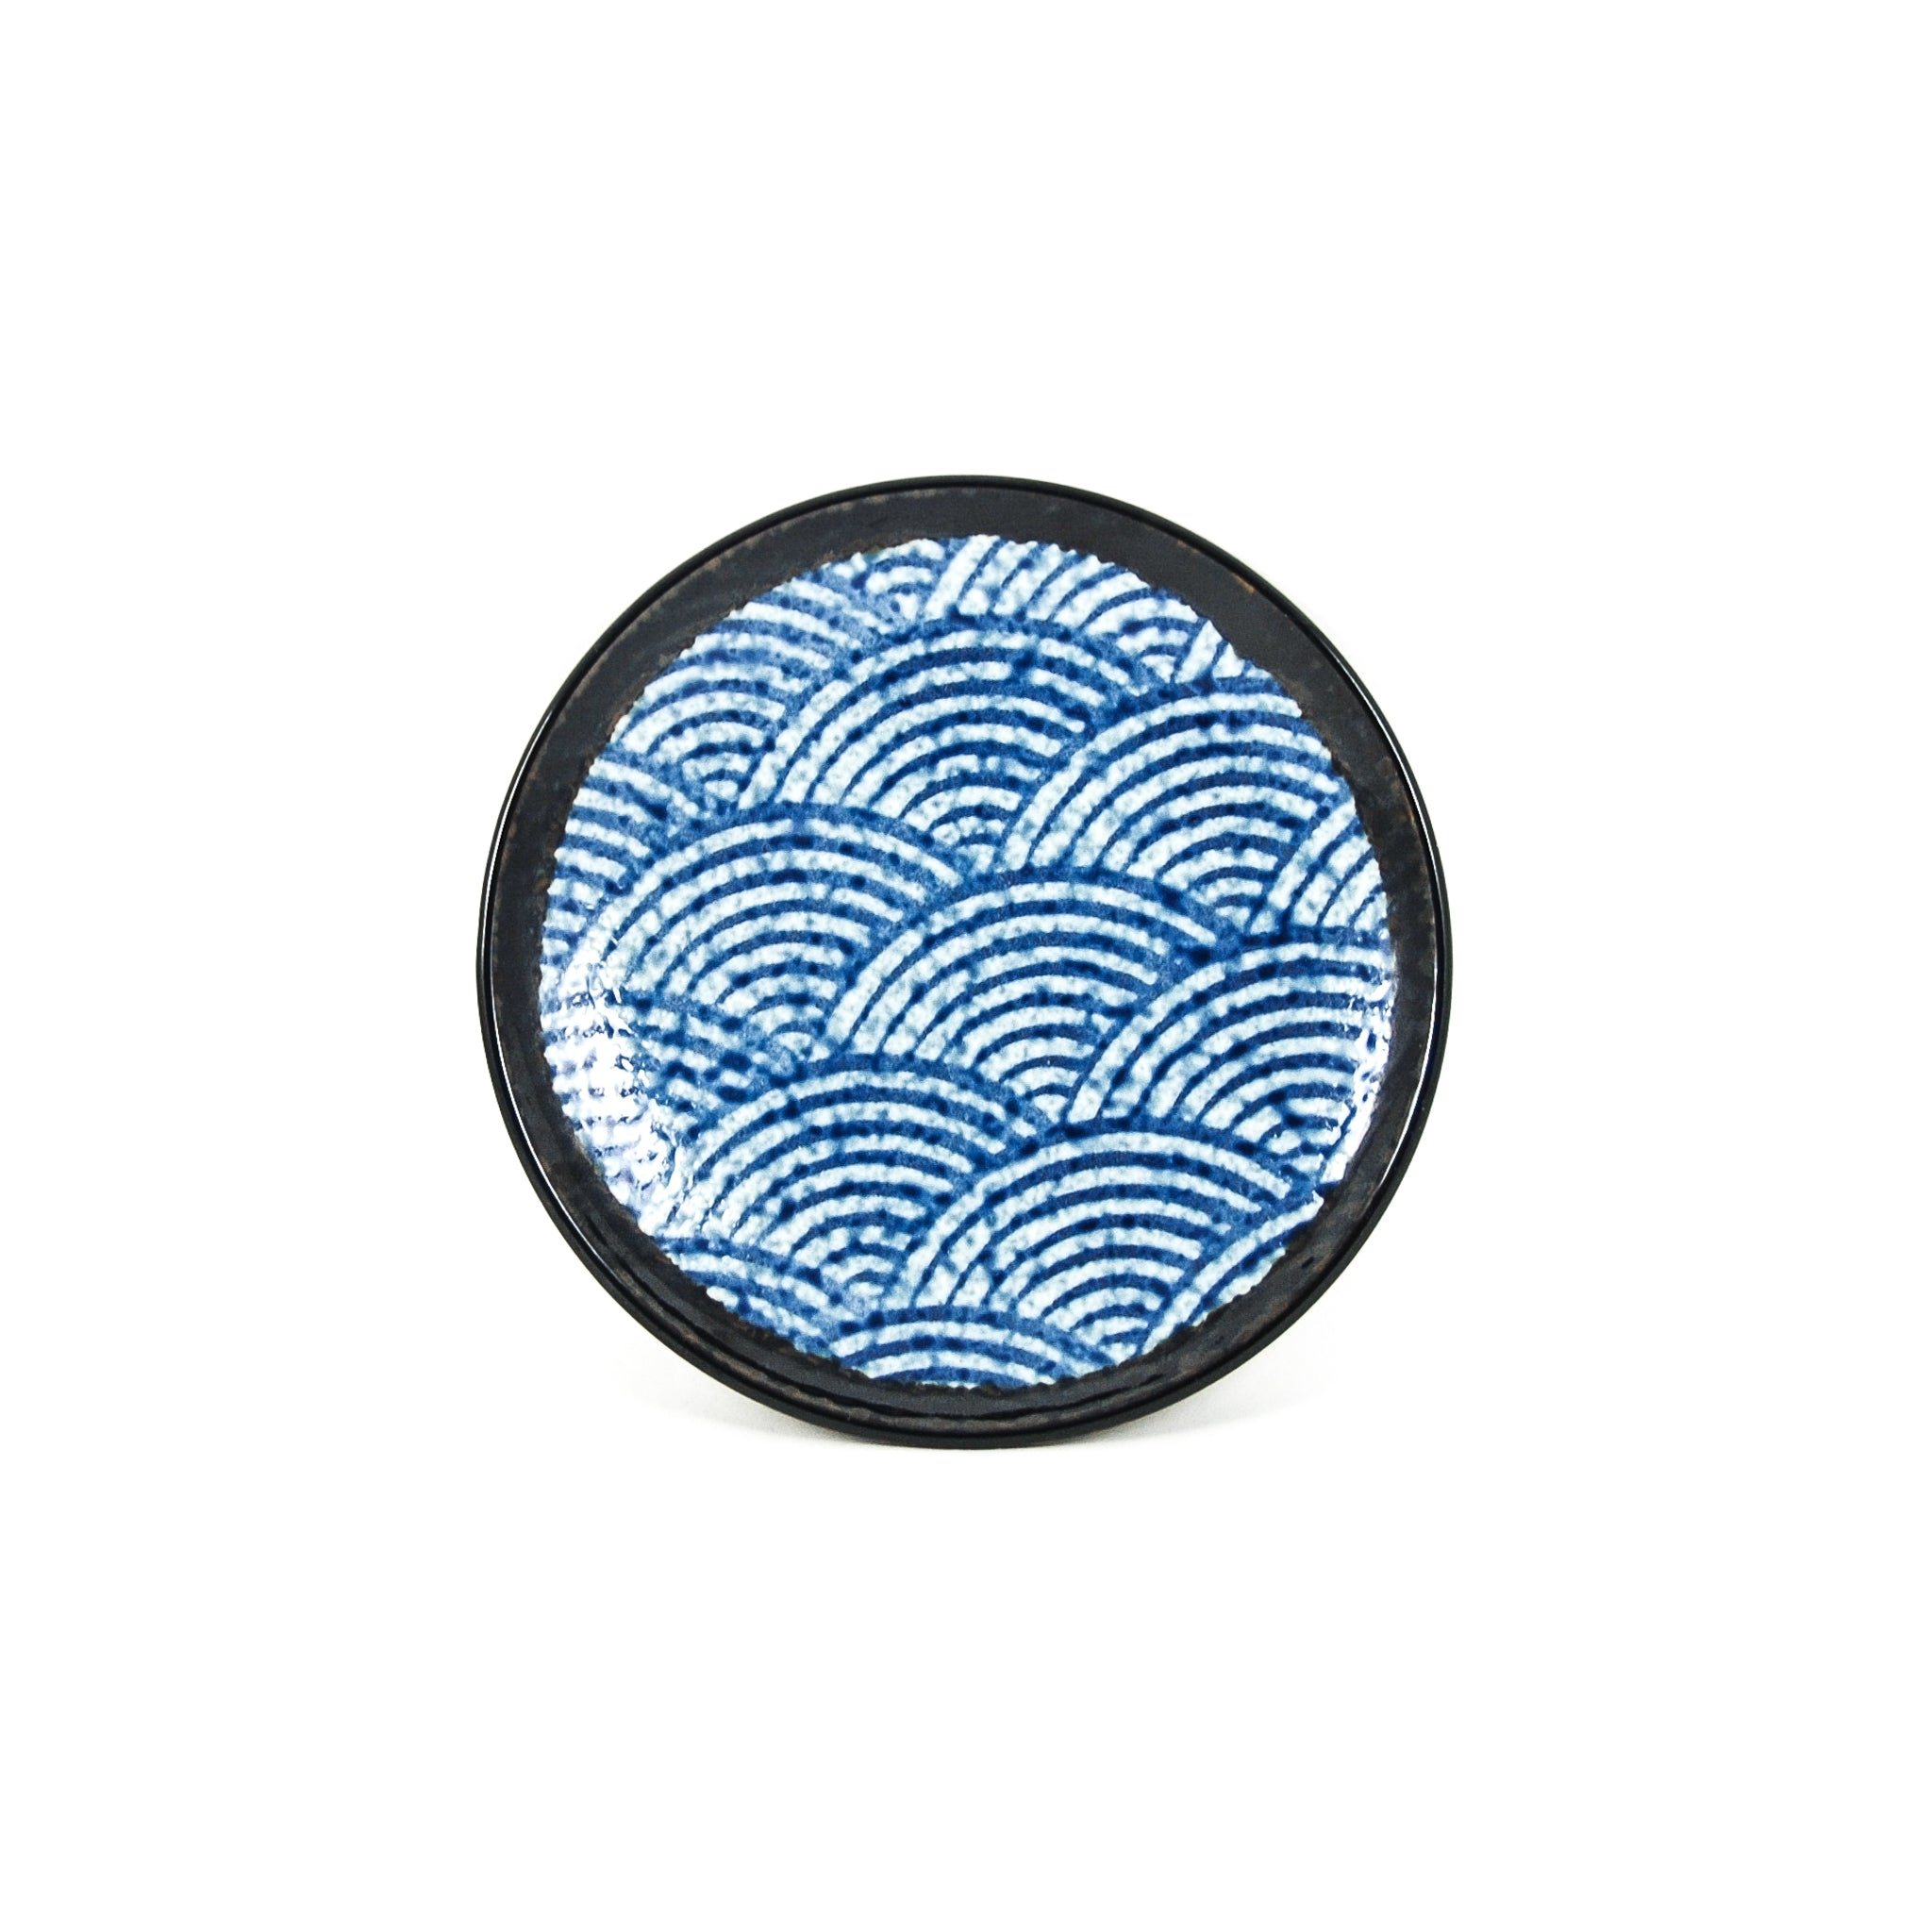 Kiji Stoneware & Ceramics Blue Wave Side Plate Tableware Japanese Tableware